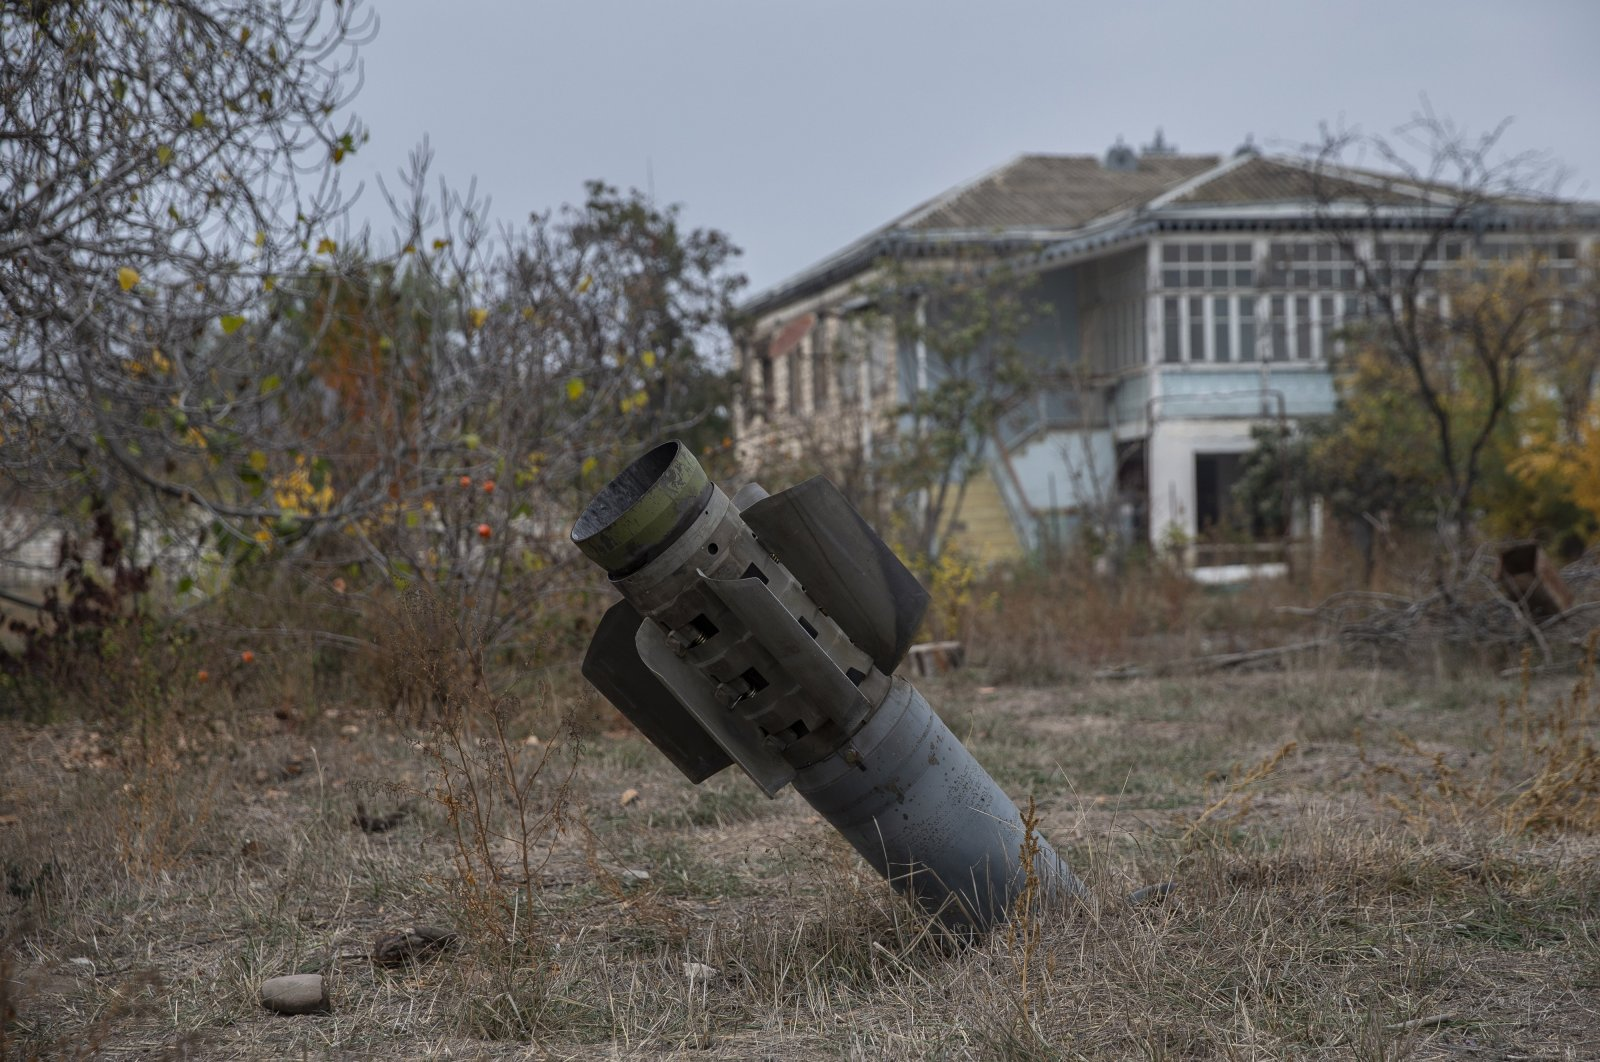 An unexploded Armenian missile in front of a house in Tartar, Azerbaijan, Nov. 5, 2020 (AA Photo)